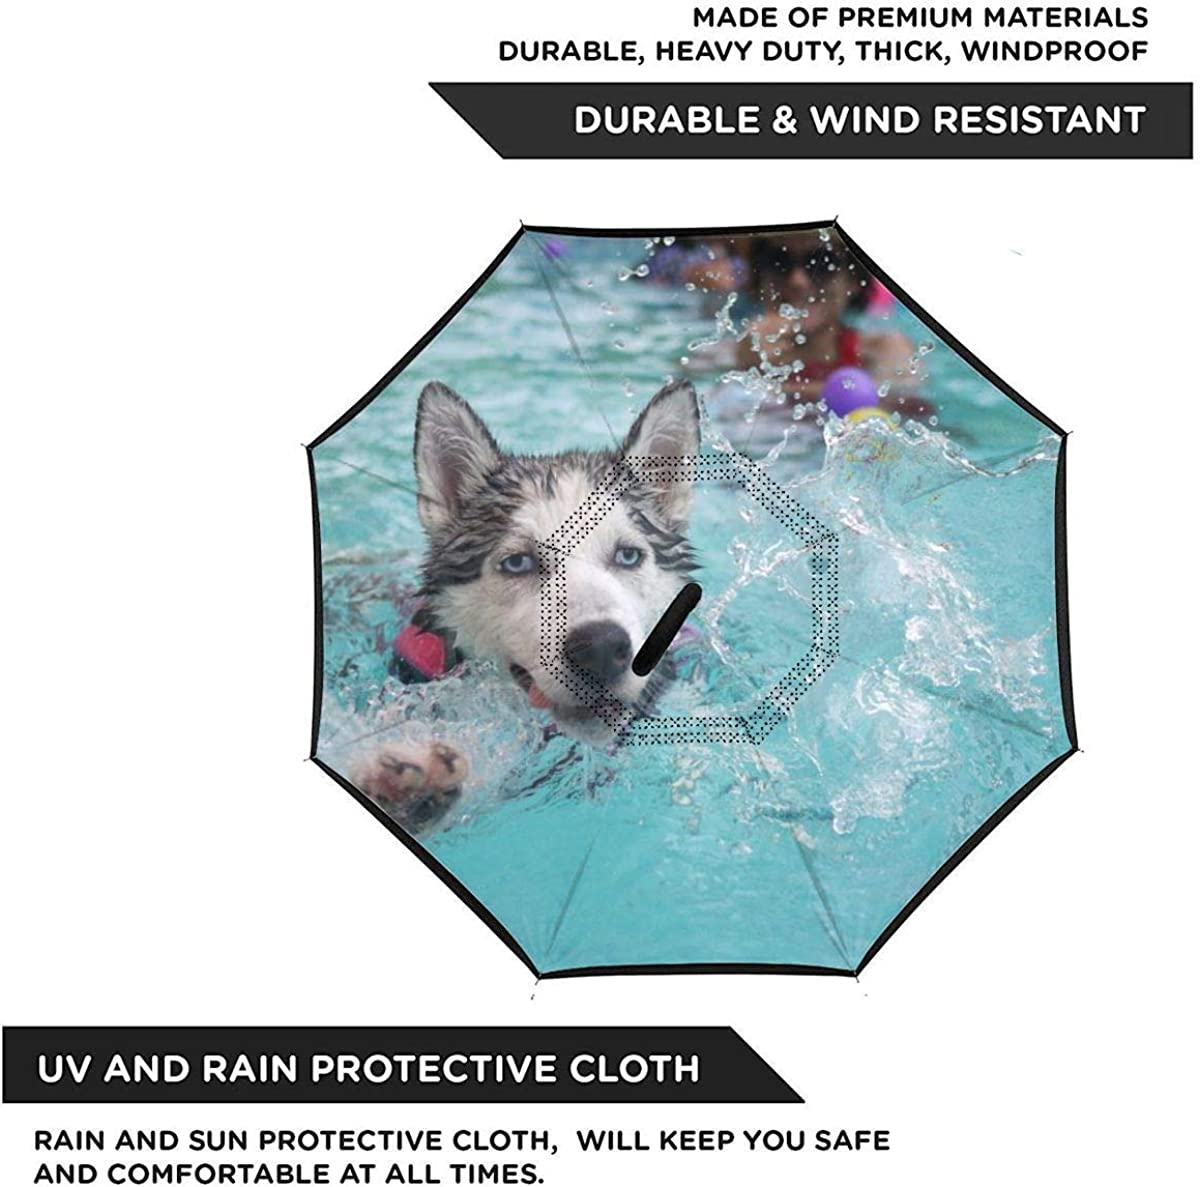 Reverse Umbrella Double Layer Inverted Umbrellas For Car Rain Outdoor With C-Shaped Handle Dog Animal Puppy Huskies Siberian Husky Personalized